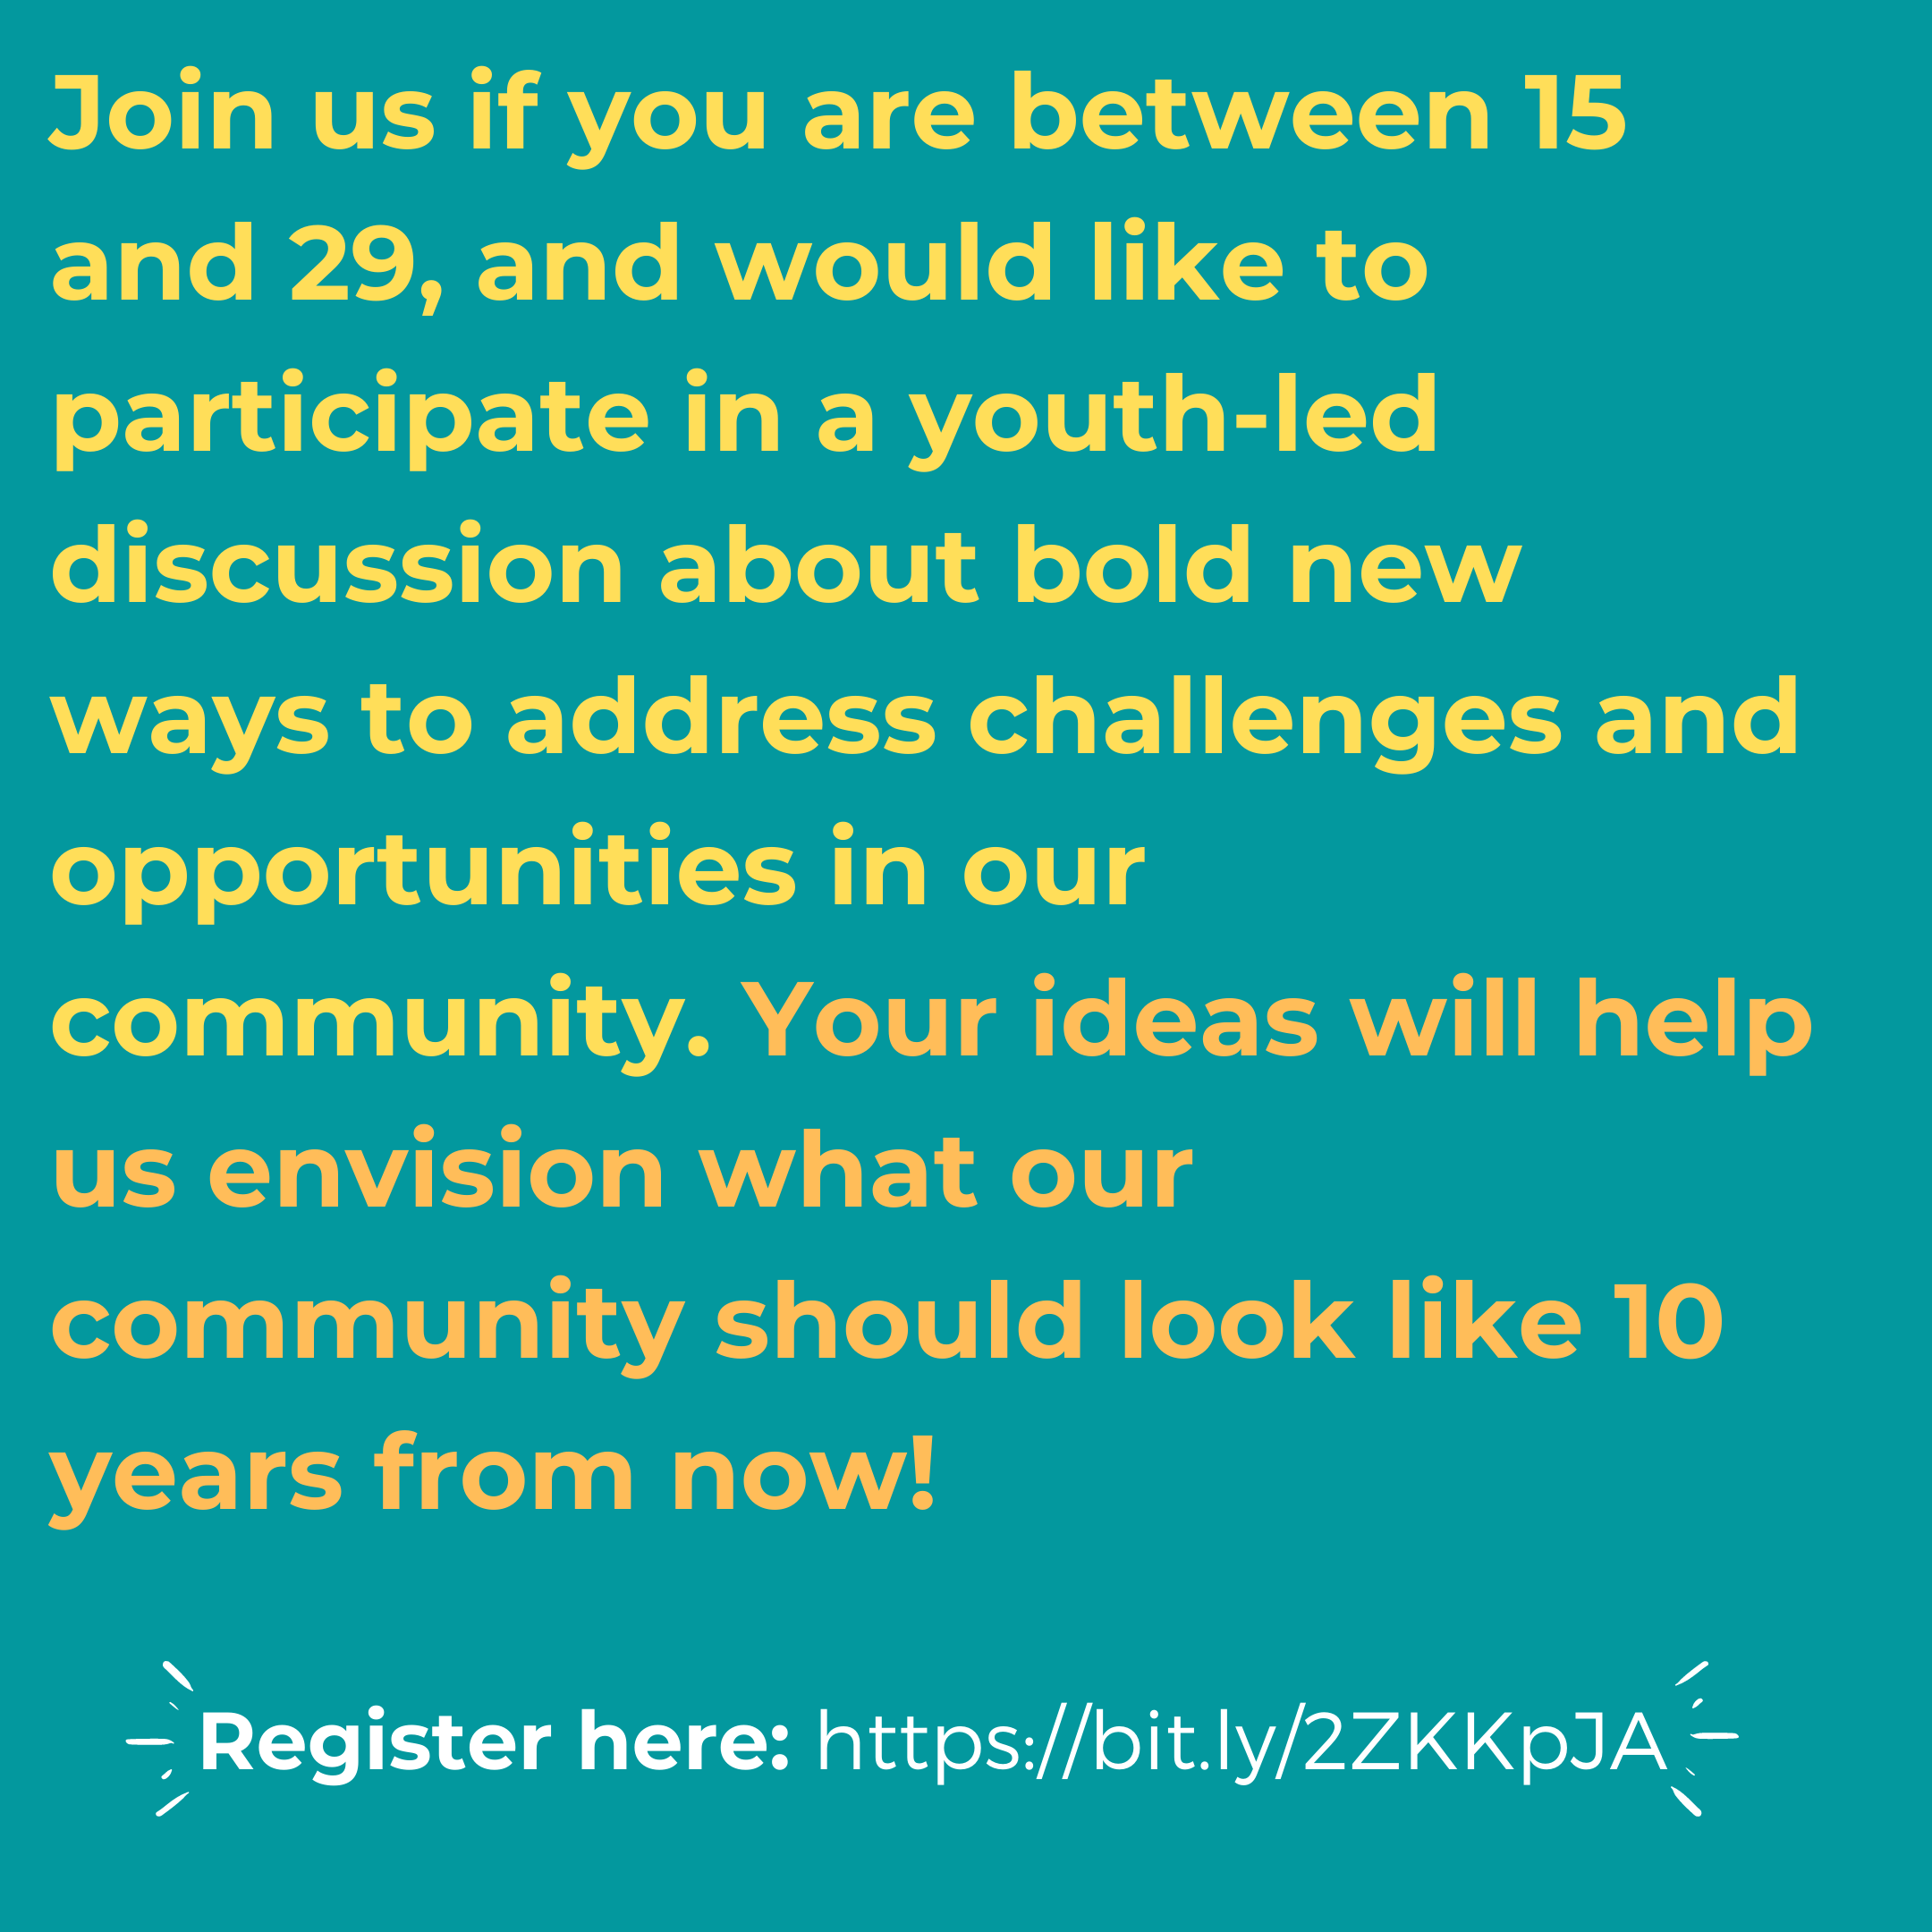 Joing us if you are between 15-29 and would like to participate in a youth led discussion about bold new ways to address challenges and opportunities in our community. Your ideas will help us envision what our community should look like 10 years from now!